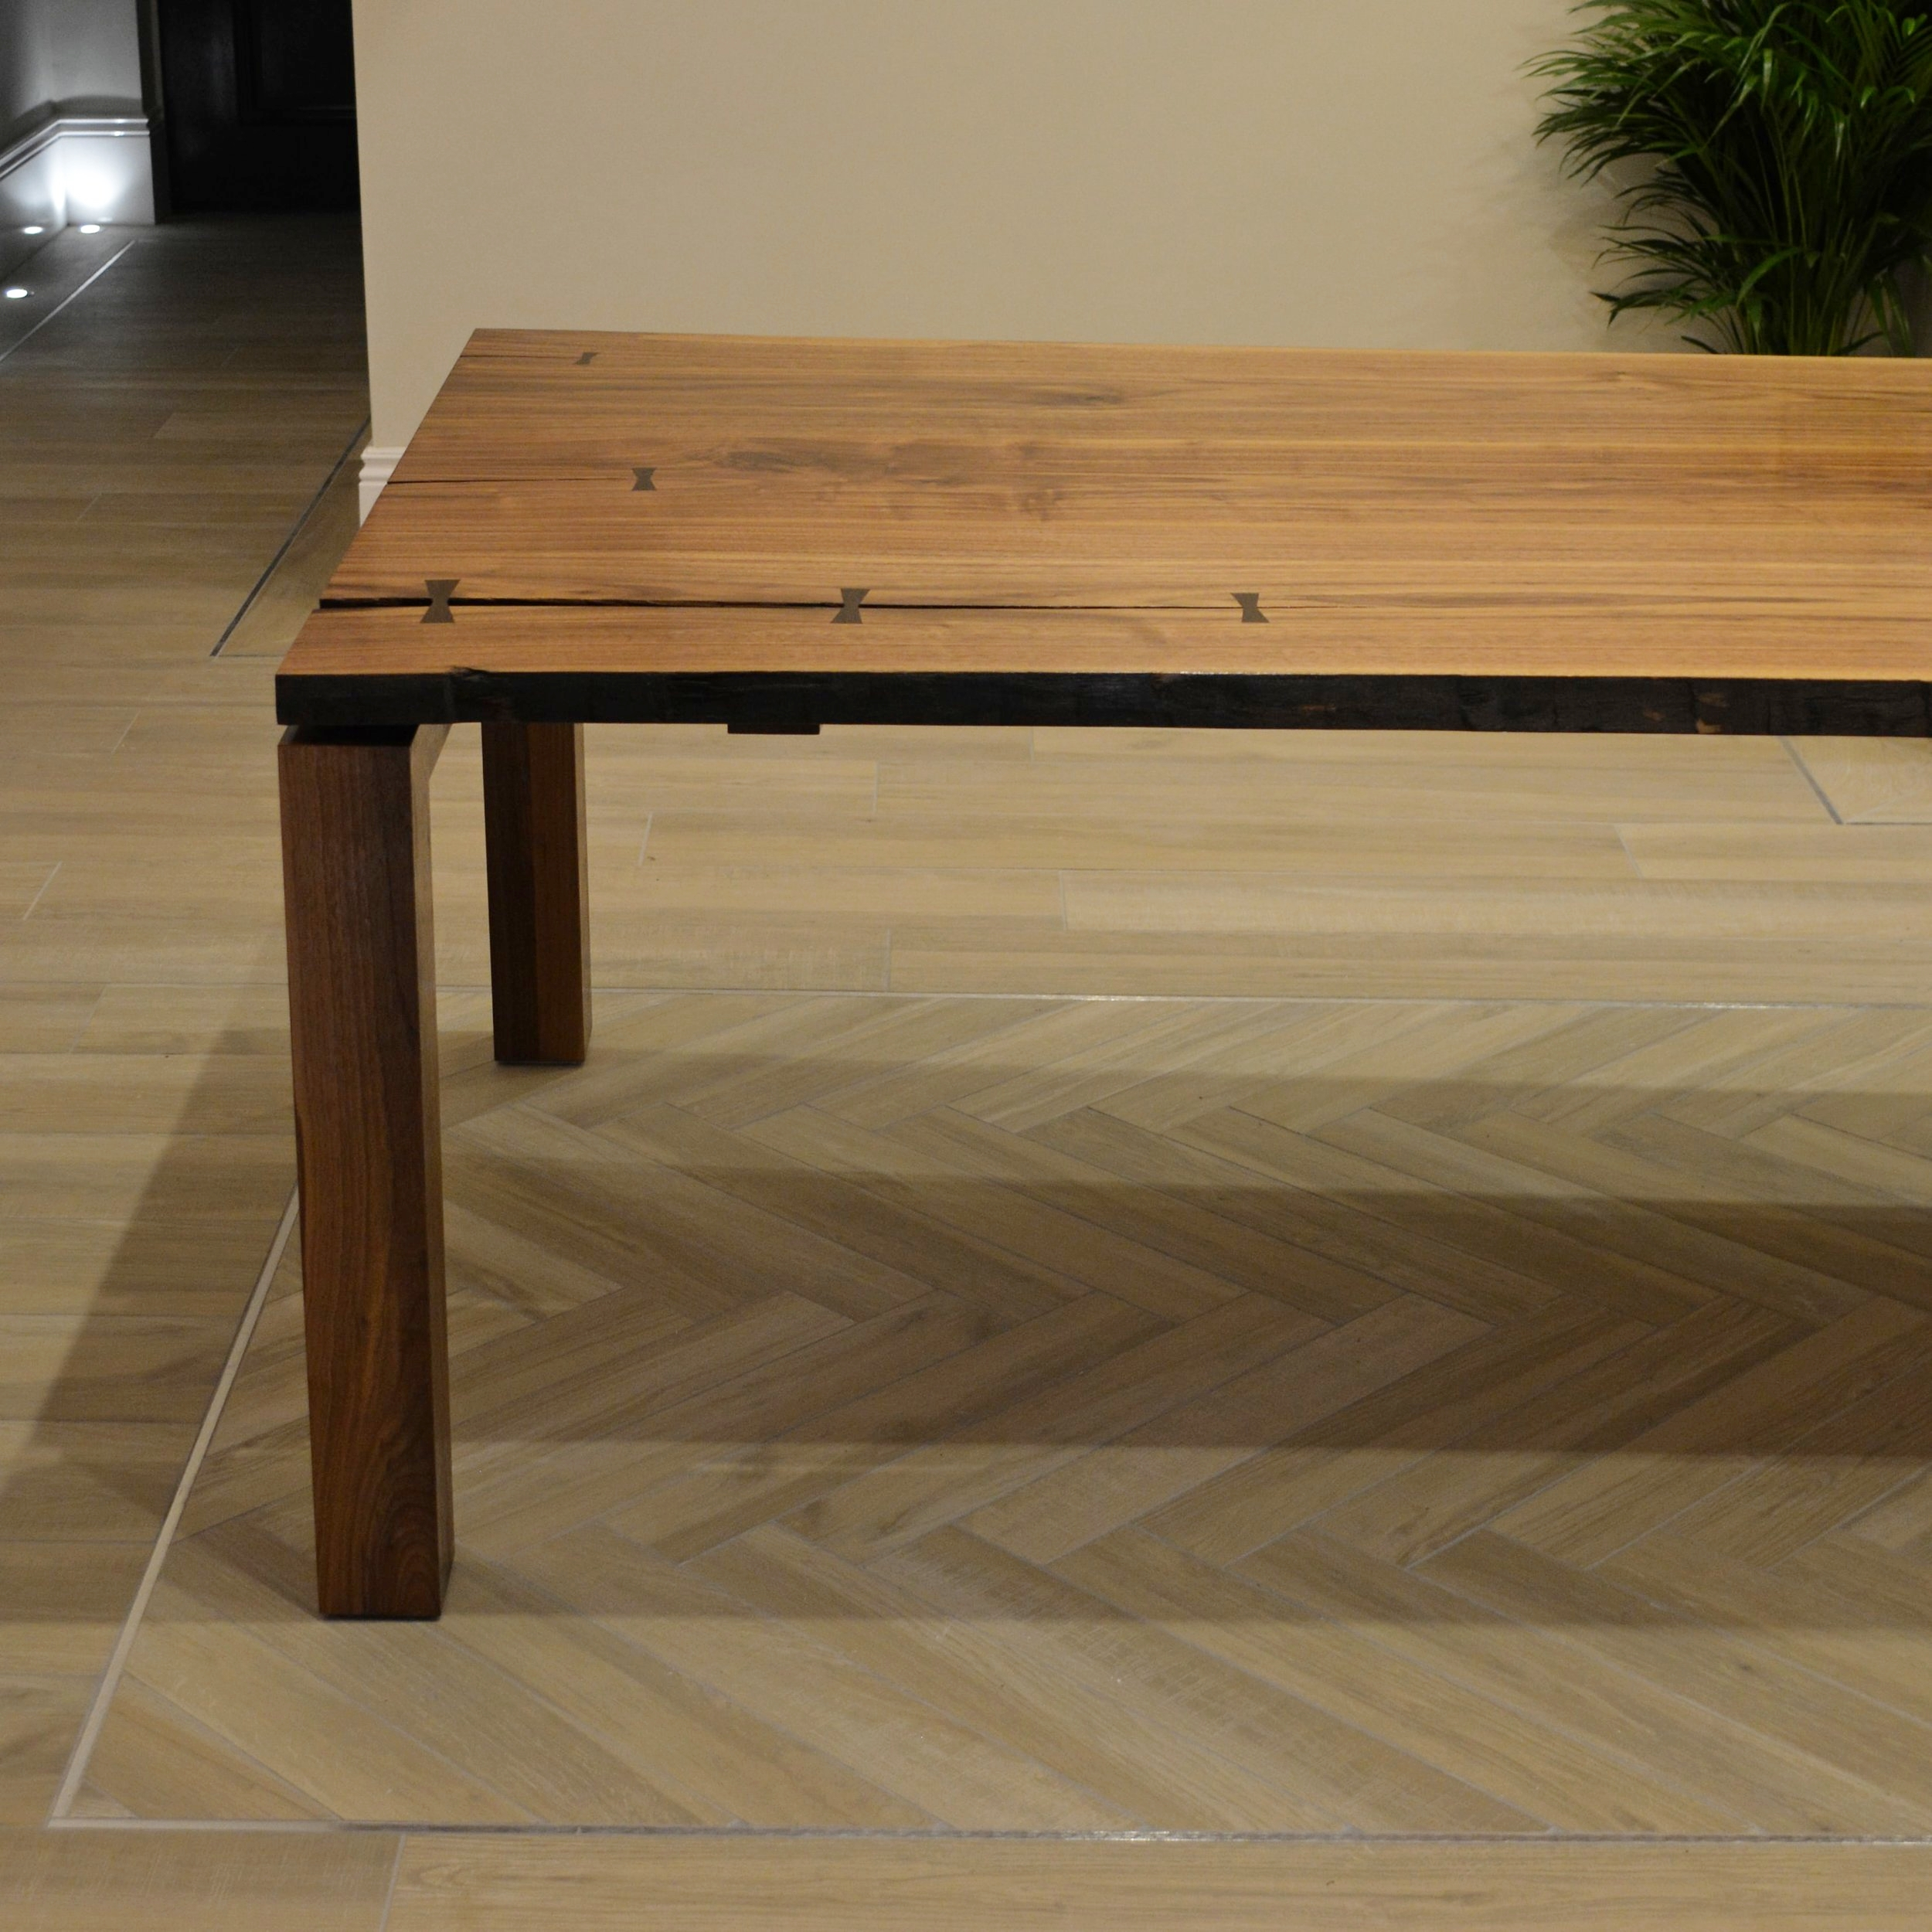 Takumi Woodwork - Walnut Dining Table